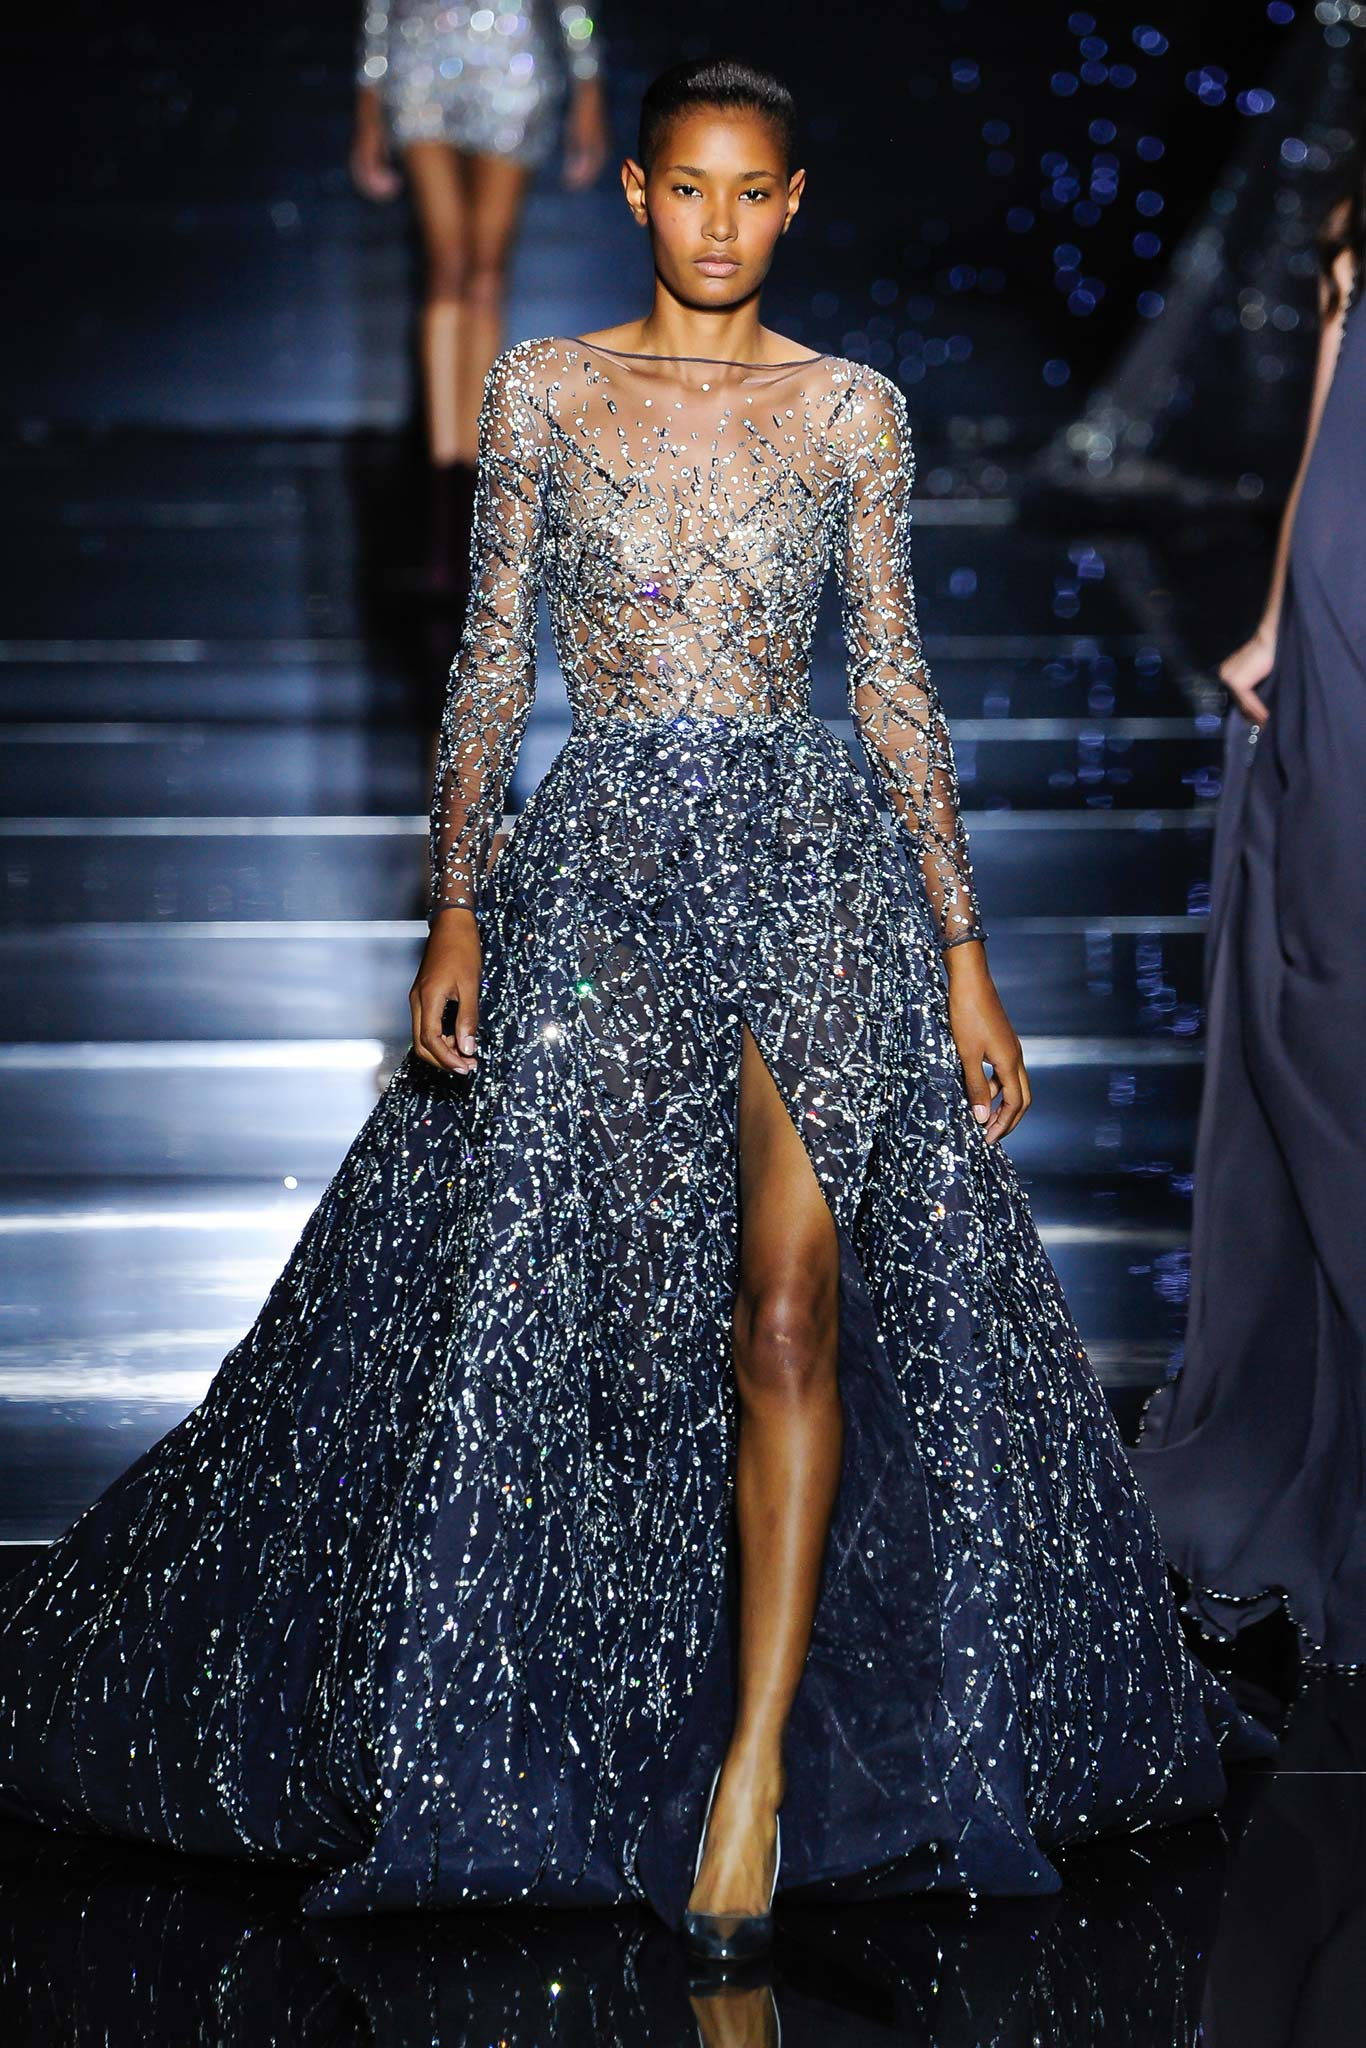 HAUTE COUTURE FASHION PHOTOS: Zuhair Murad Fall 2015 couture collection from Paris